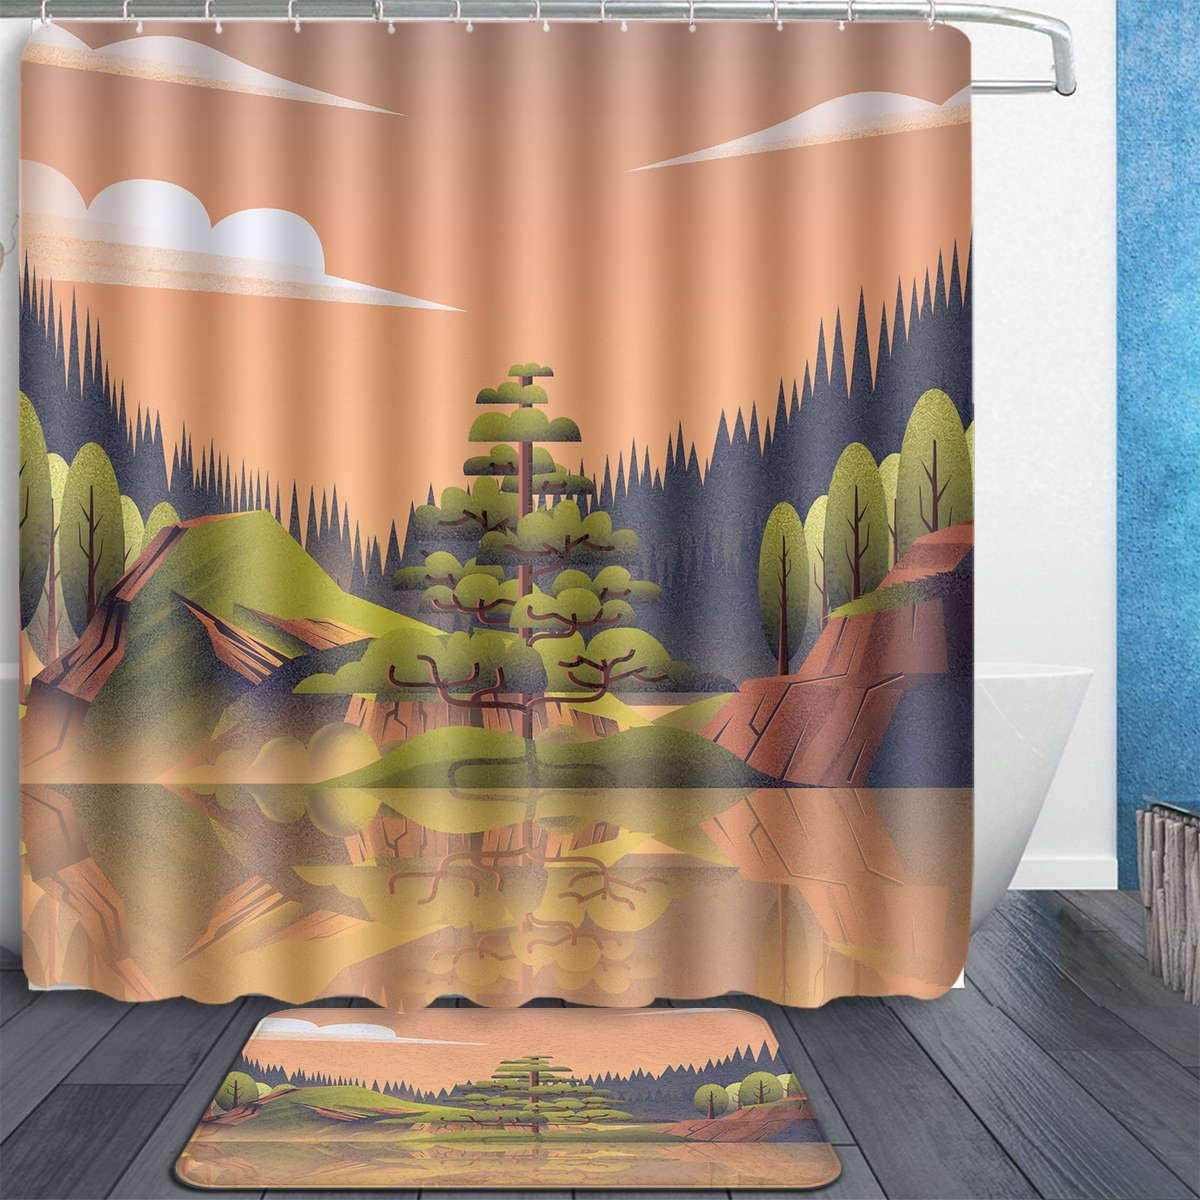 Tidyki Waterfall Stone Forest Spring Plant Lake Shower Curtain and Rug Set Bathroom Fabric Waterproof Home Decor with 12 Hooks and Anti-Slip Absorbent Bath Mat Rugs 60x72